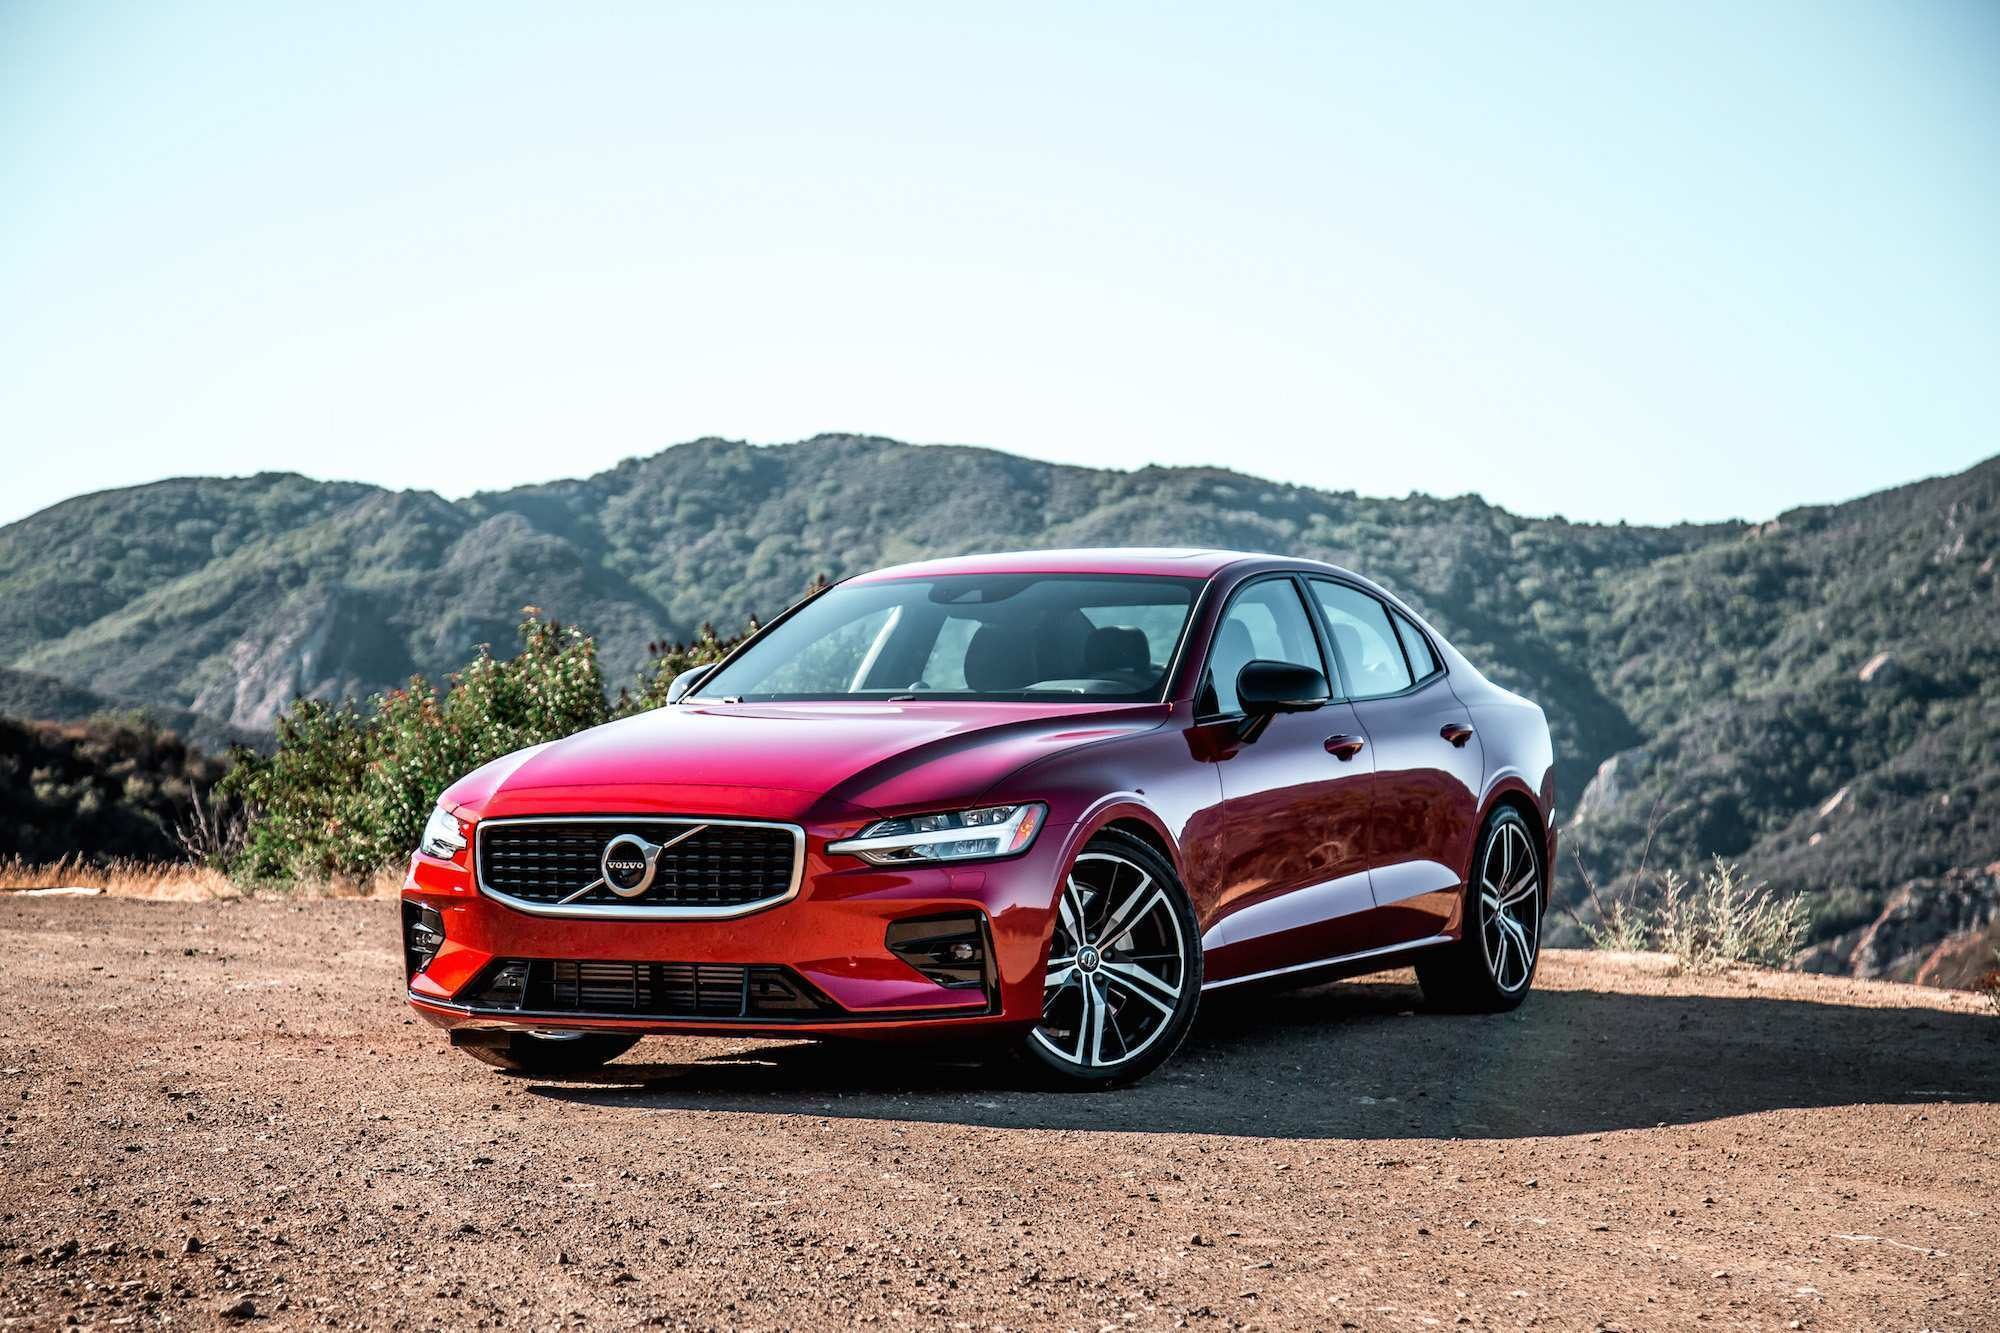 16 Best Review 2020 Volvo V60 Length Pricing by 2020 Volvo V60 Length